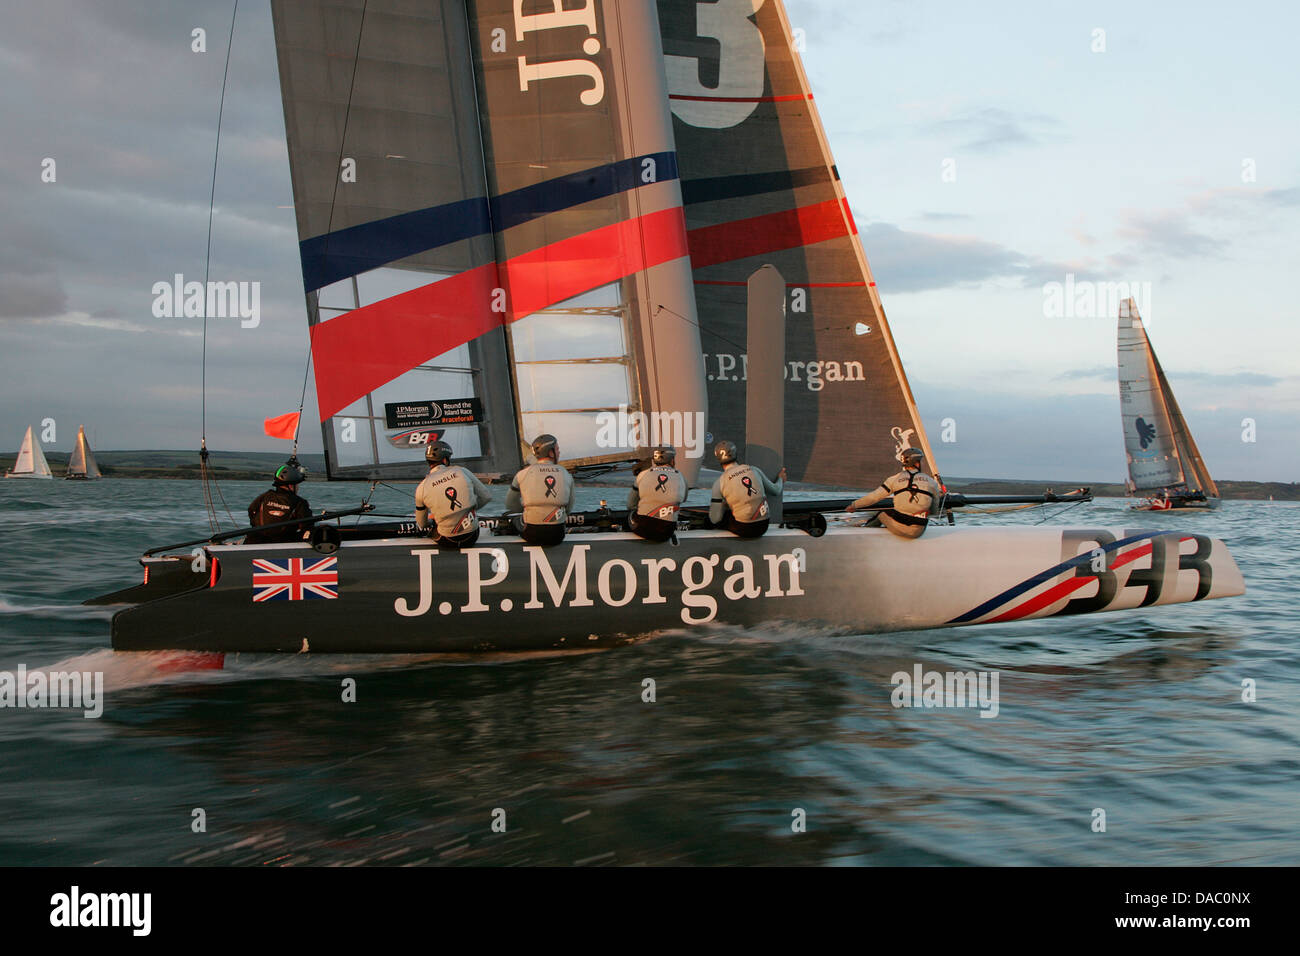 Sir Ben Ainslie J P Morgan Cowes isle of Wight catamaran Round the island Race, 2013 Stock Photo